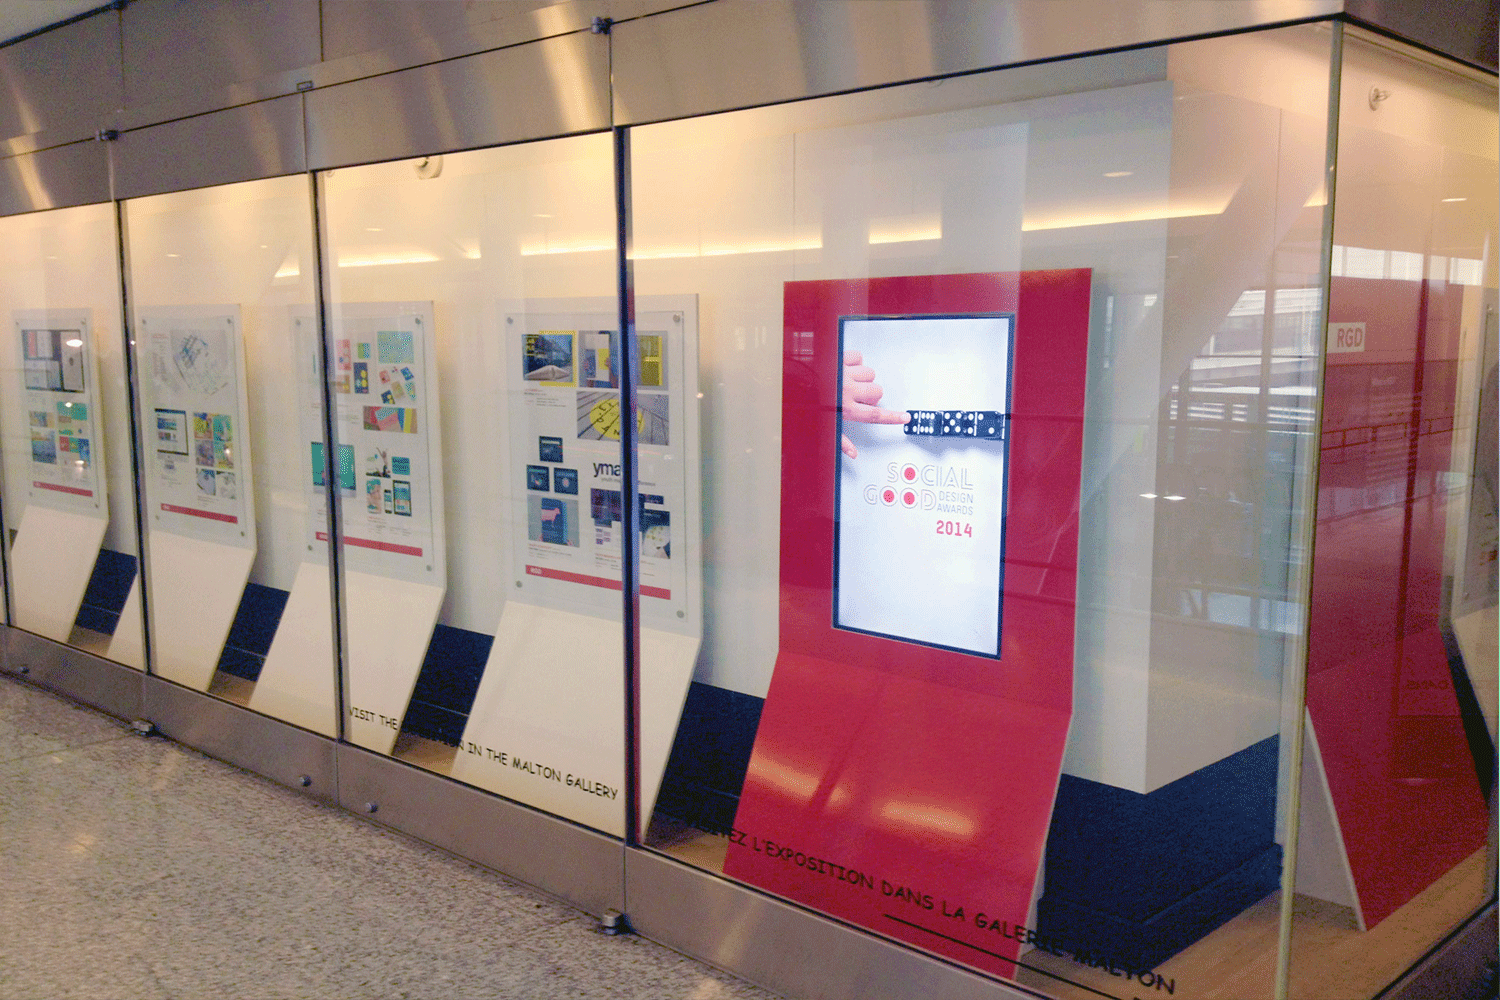 Our Work Featured at Pearson International Airport